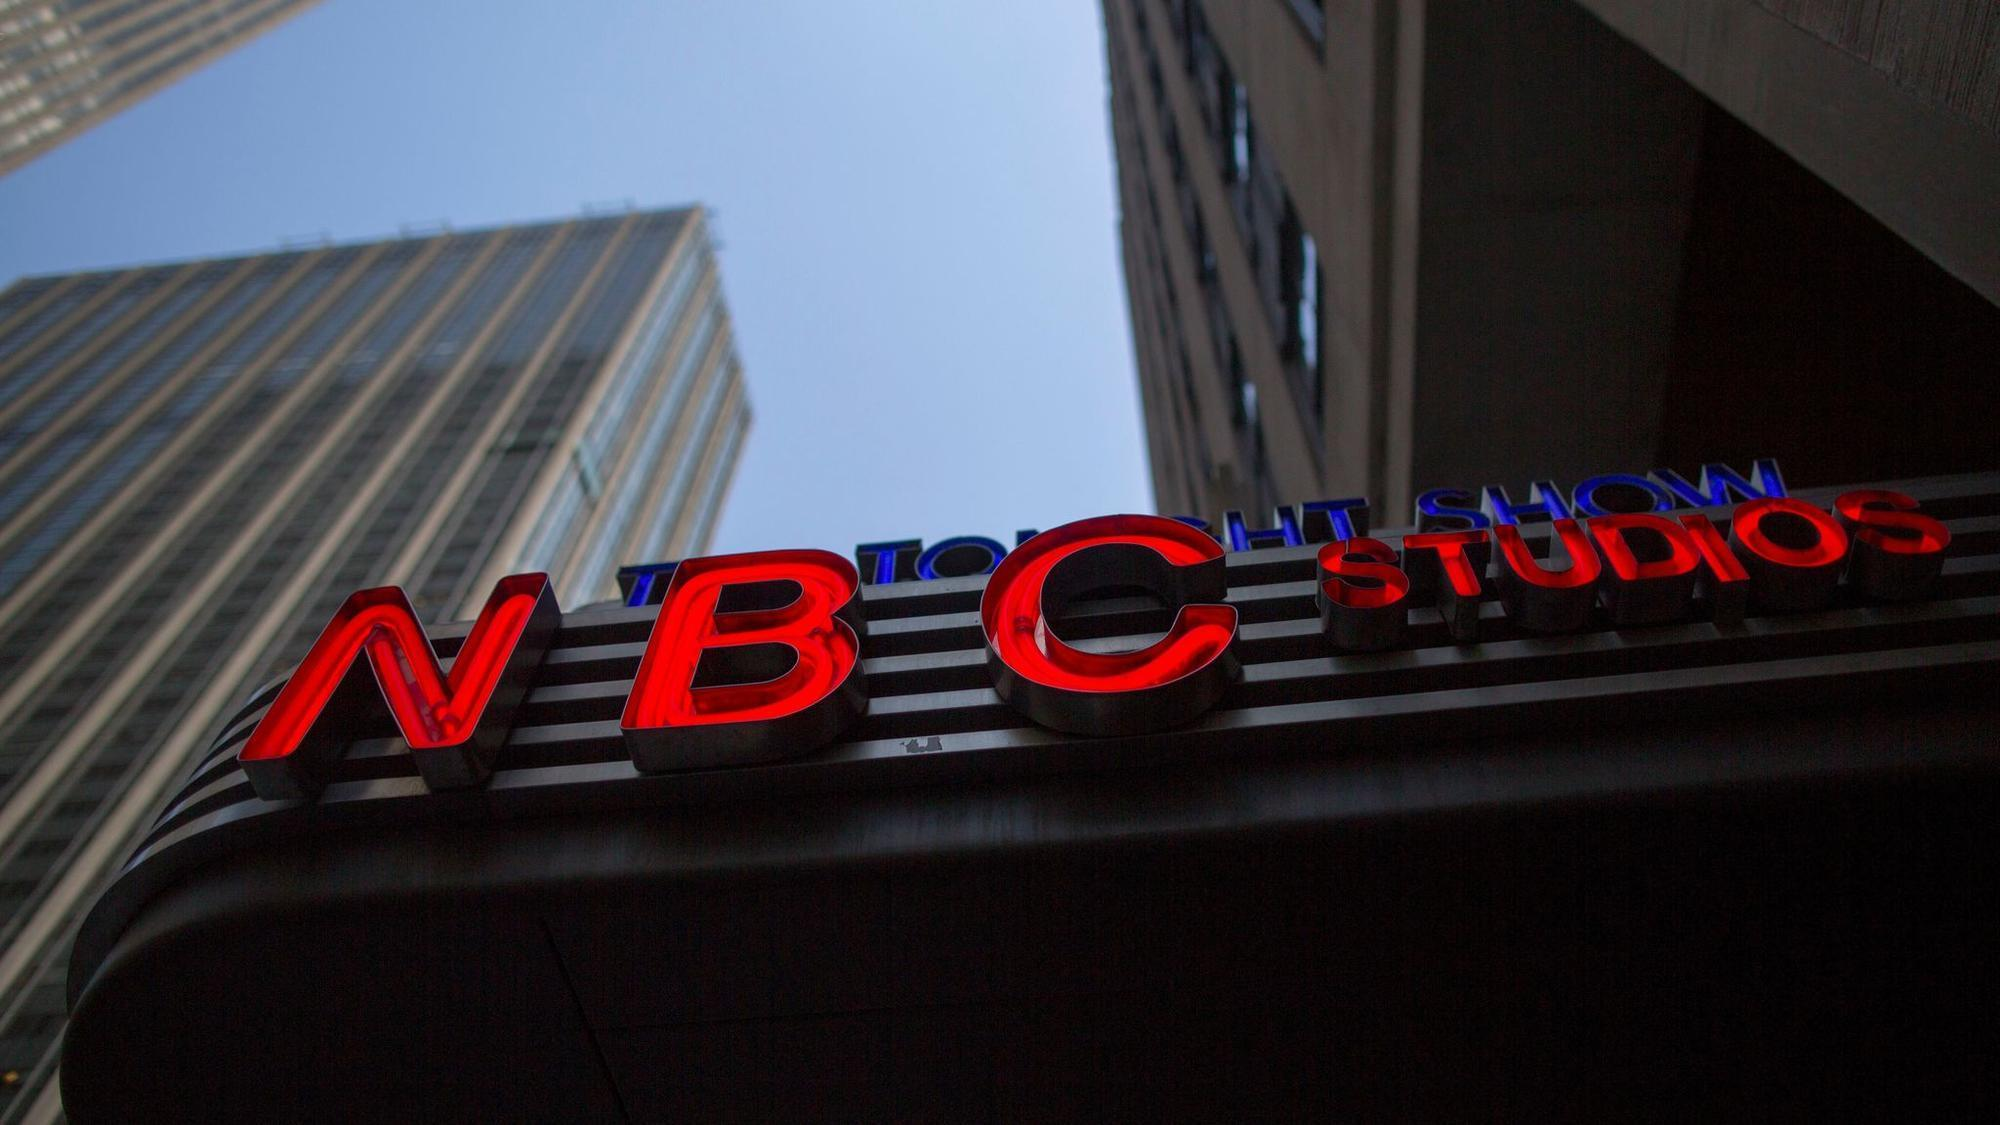 NBC News executive ousted over 'inappropriate conduct' with female employees